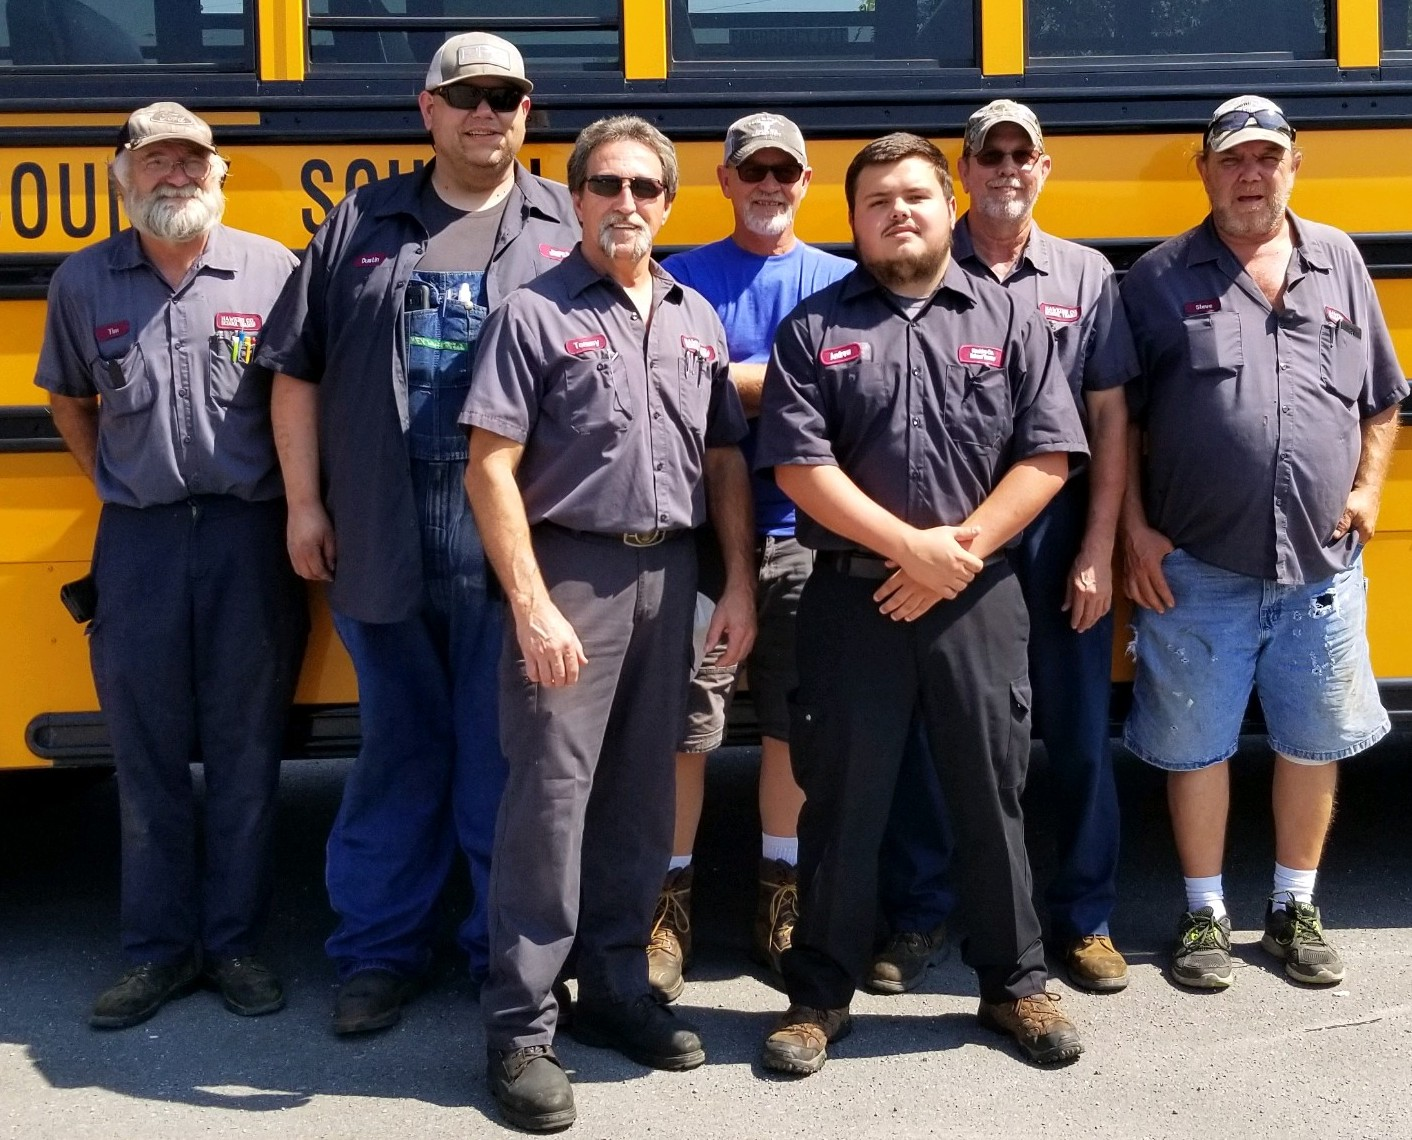 Transportation Mechanics  From Left to Right:  Tim Manis, Dusty Trent, Tommy Hall, Troy Marcum, Andrew Justice, Rick Hunley, Steve Seals